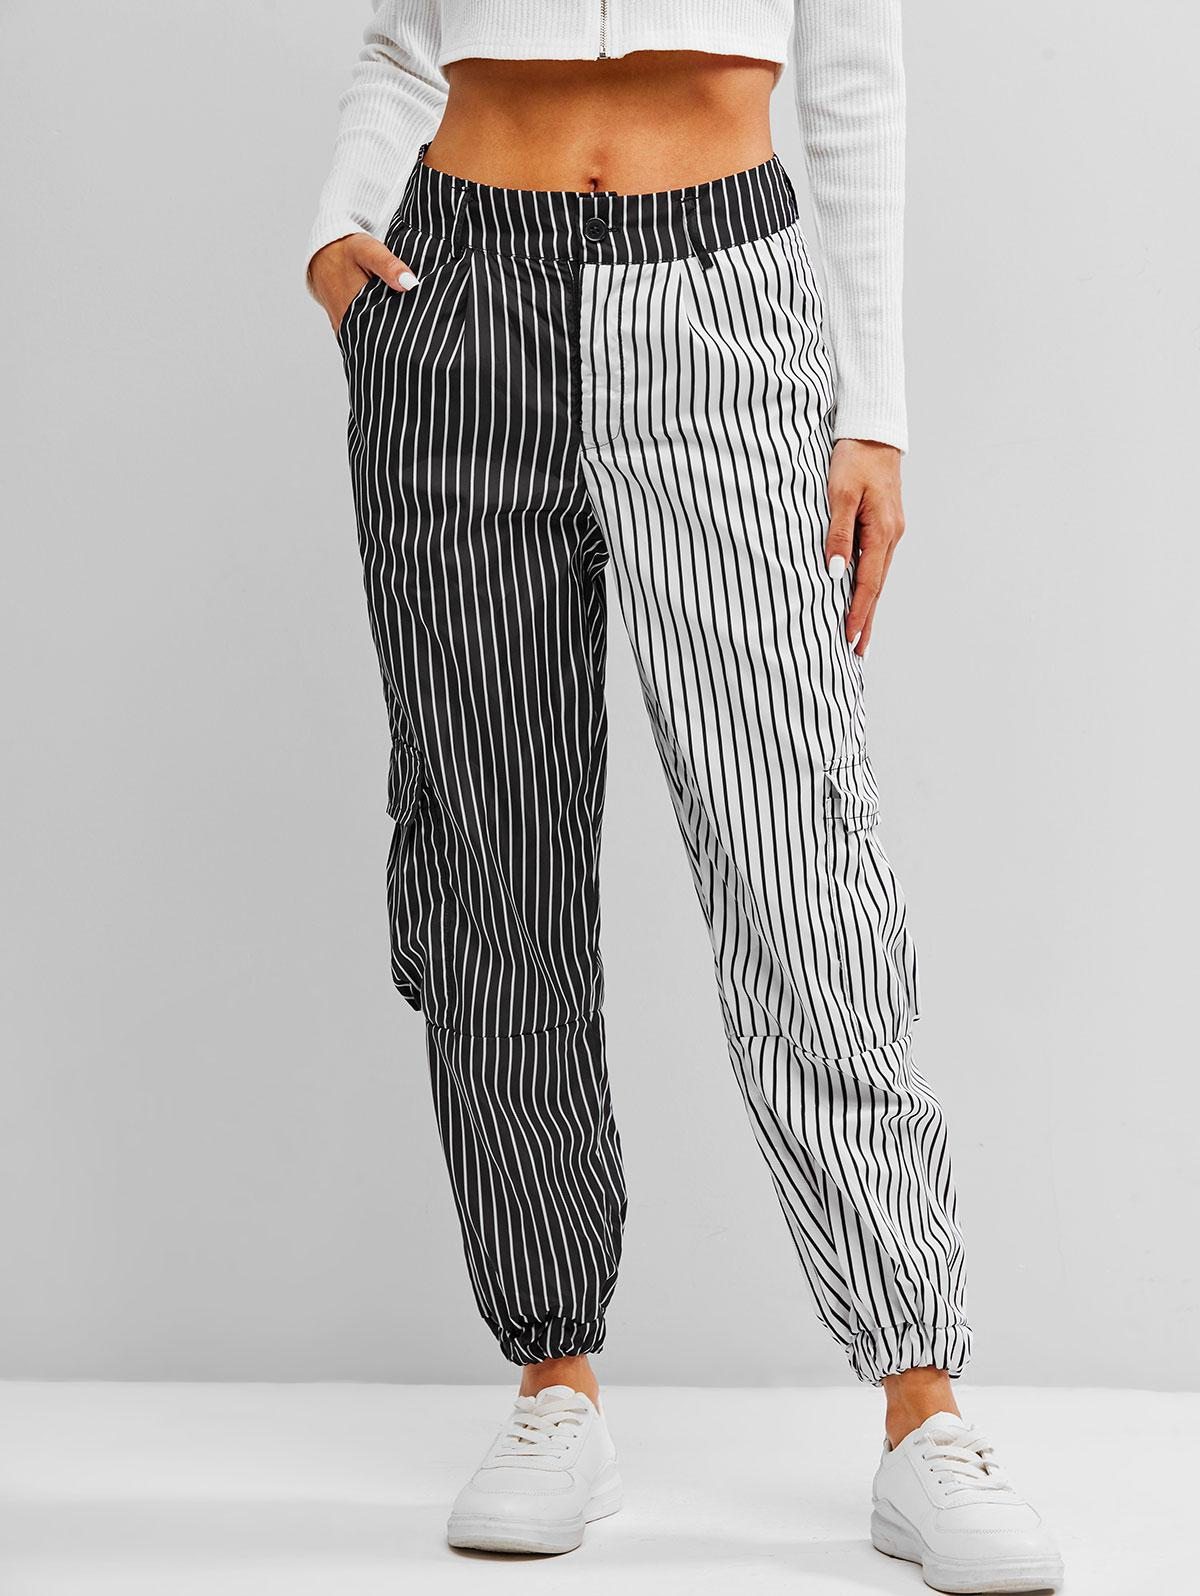 Flap Pockets Contrast Striped Cargo Pants